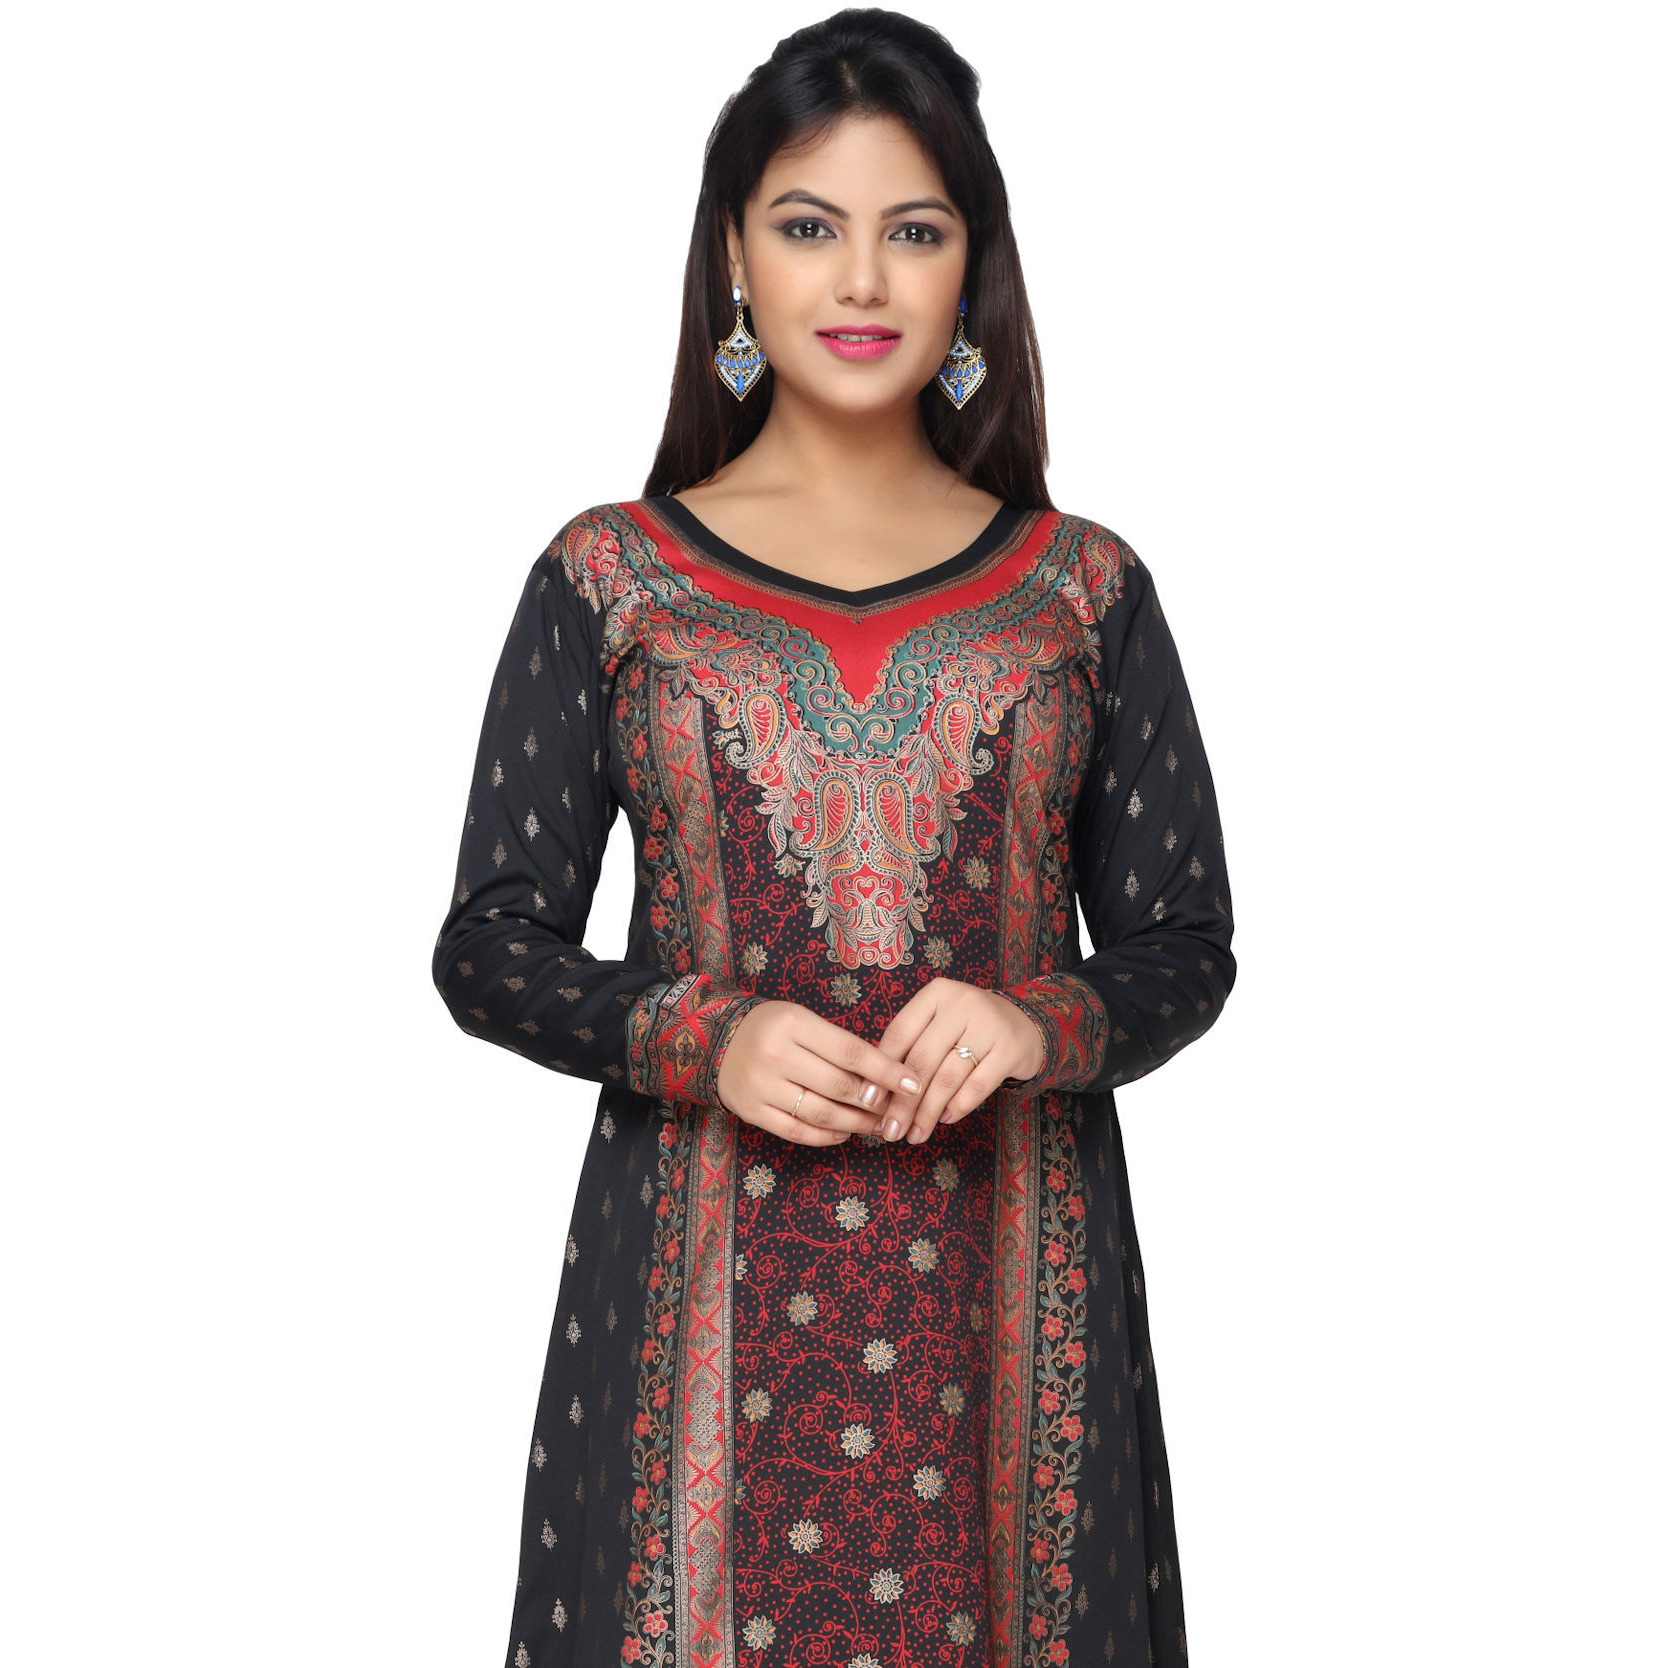 TrendyFashionMall Black-Red Gold Print Kaftan Abaya Maxi Dress KFT01031 S-38 (Size:38 - SMALL, Color:TFMKFT01031-BLACK-RED)